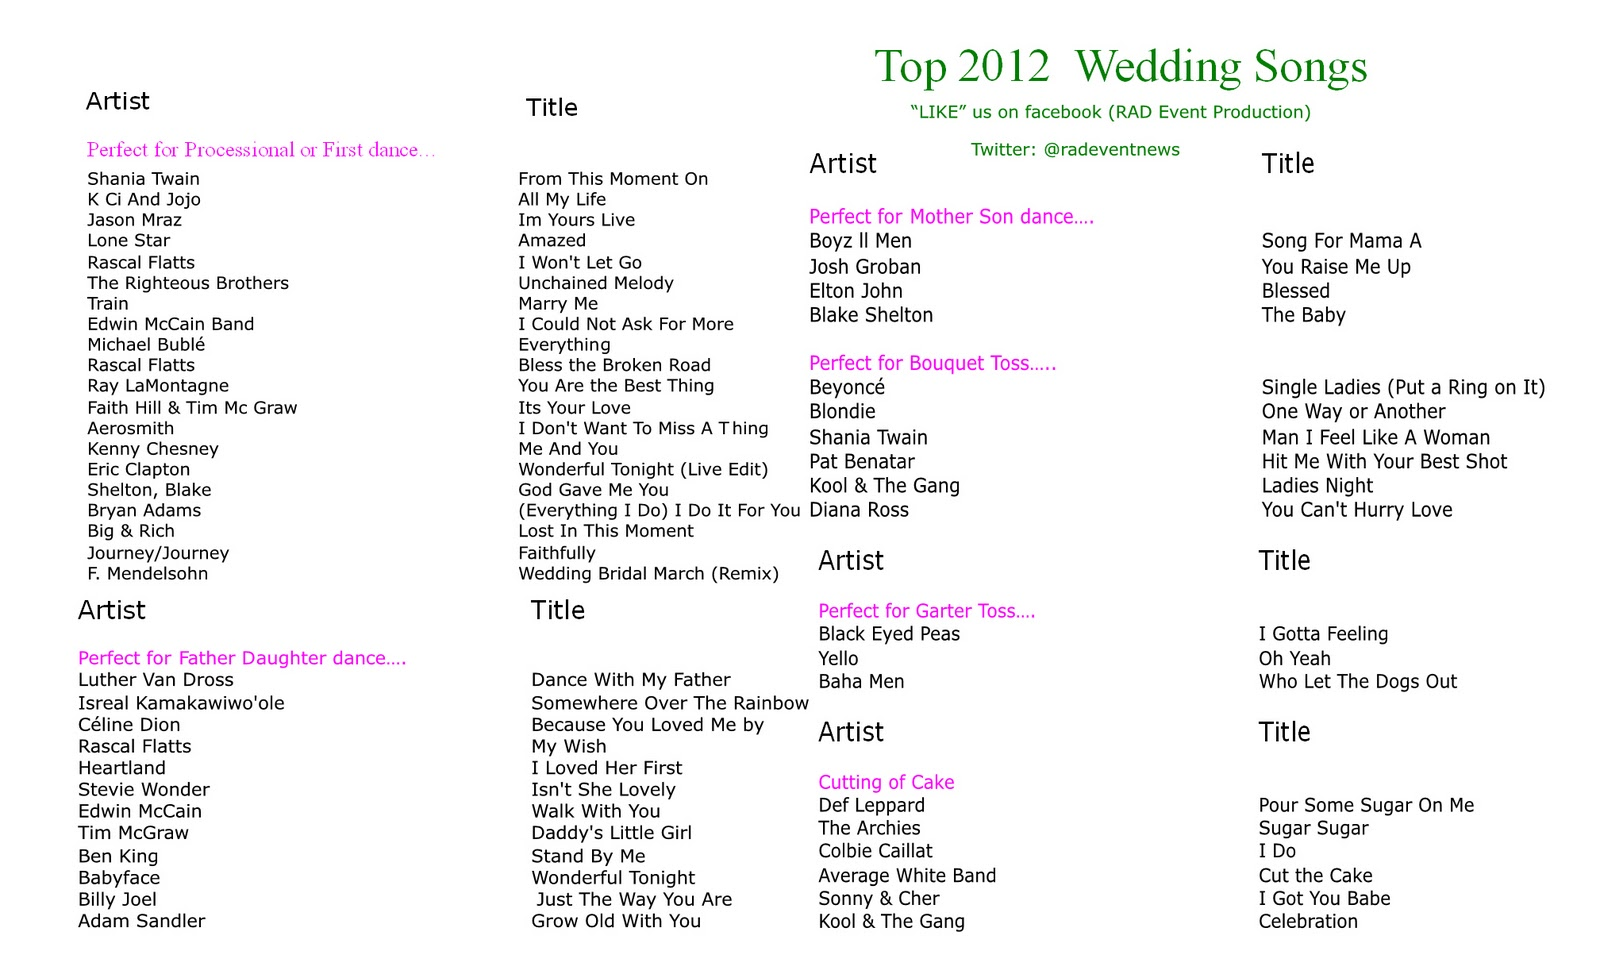 RAD Event Production Inc 2012 Top Wedding Songs